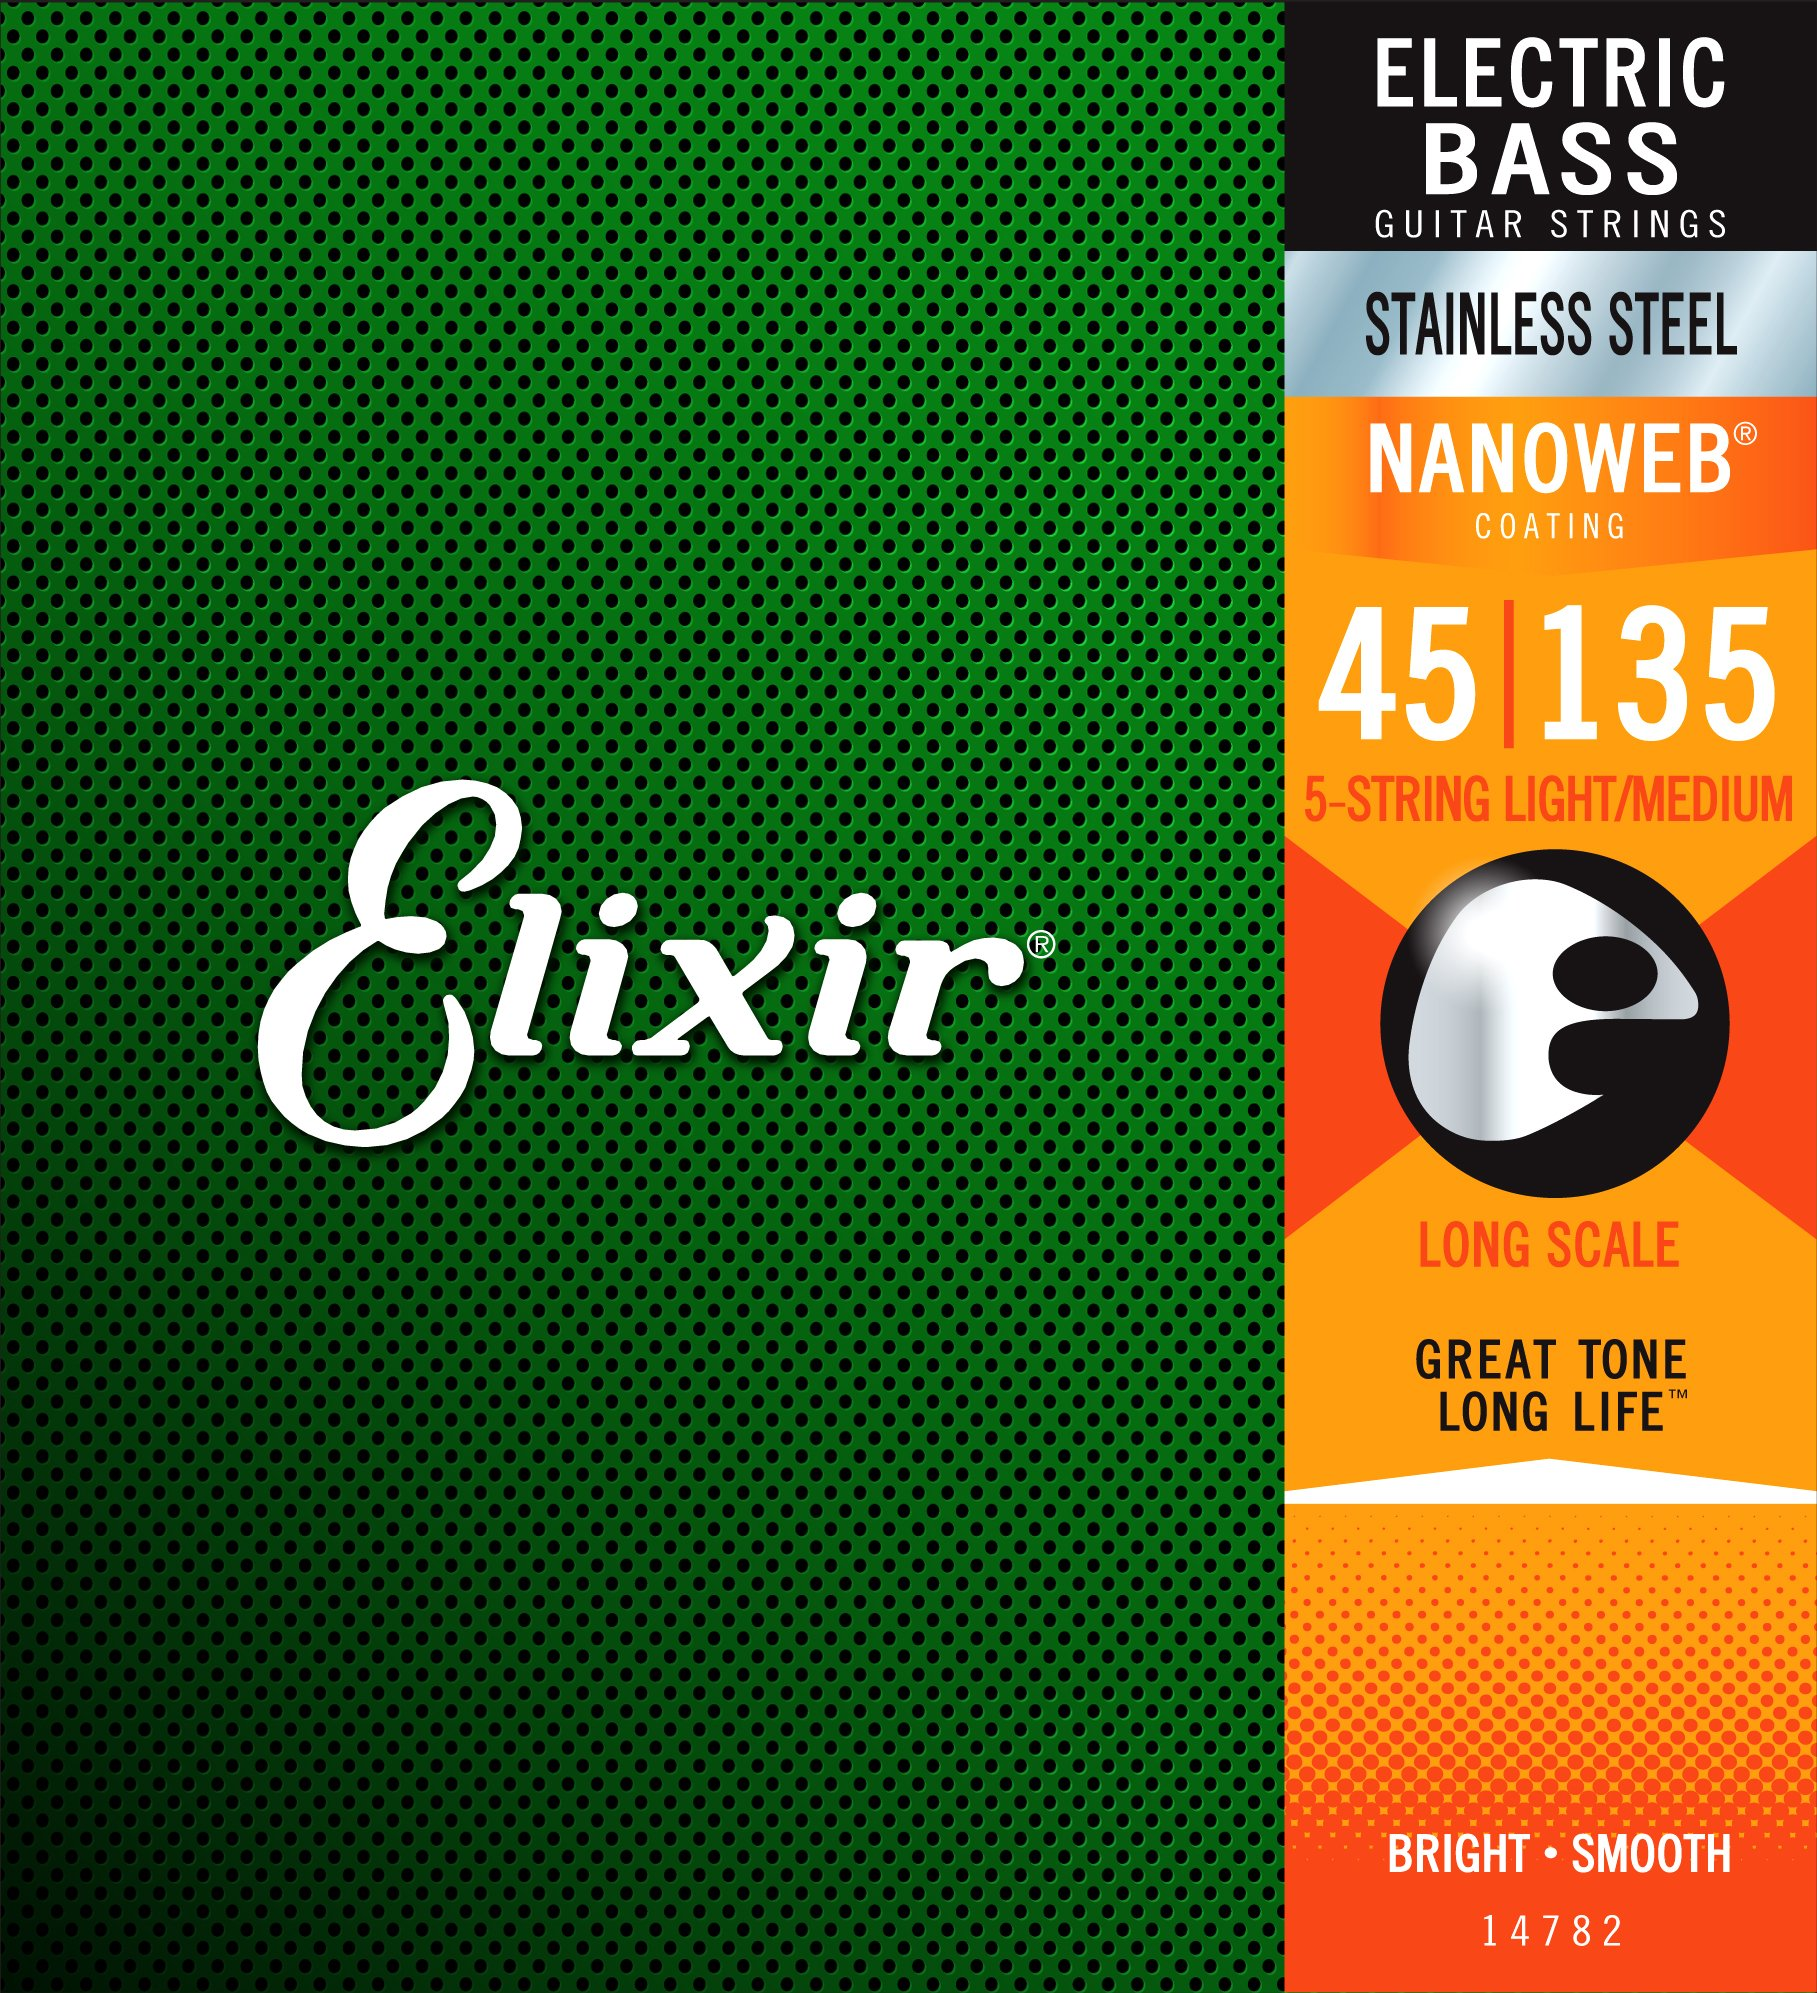 Elixir Strings Stainless Steel 5-String Bass Strings w NANOWEB Coating, Long Scale, Light/Medium (.045-.135)